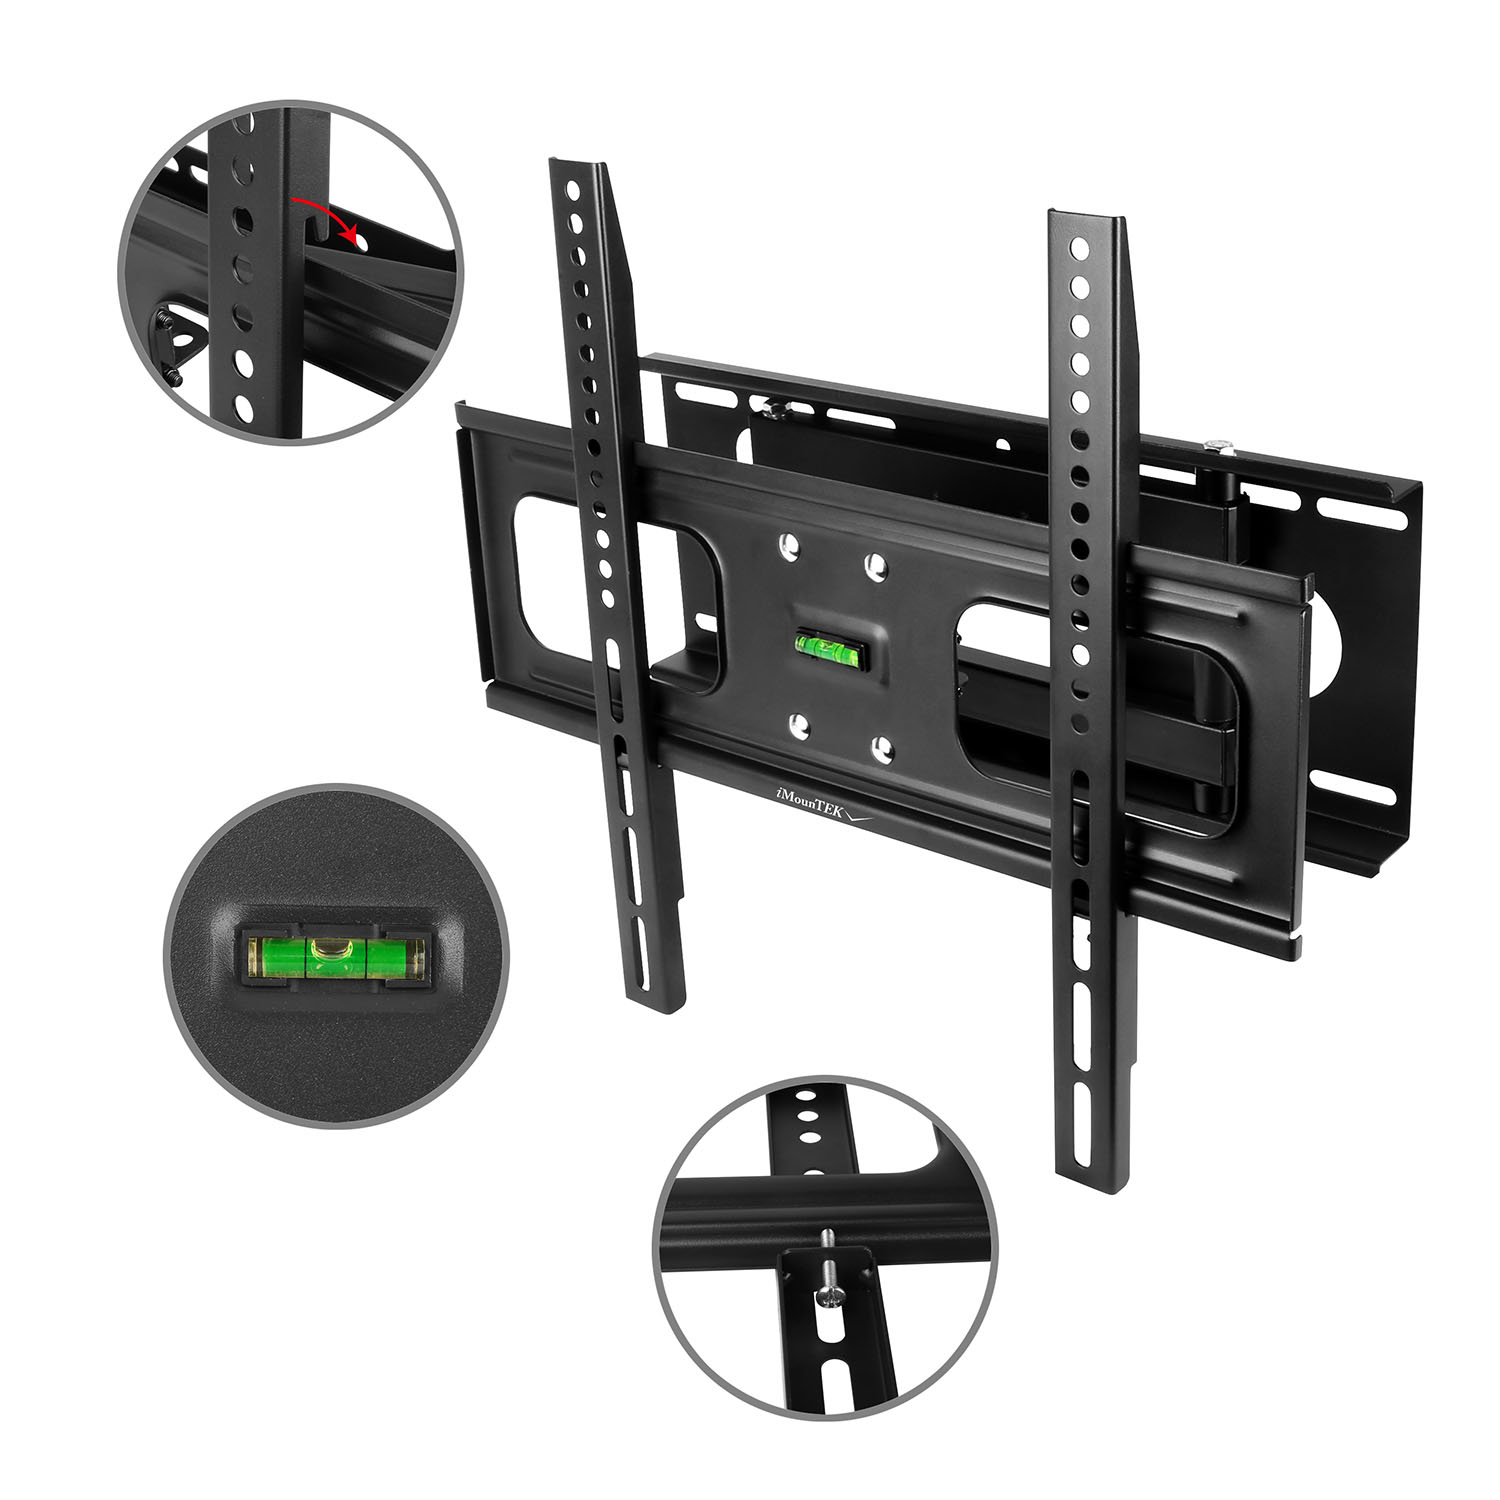 "iMounTEK Tilting TV Wall Mount Bracket For 32"" TO 55"" LED/LCD/OLED/Plasma Flat Screen TV. Full Motion Swivel Articulating Dual Arms, 99 LBS Hold- Sony/LG/Samsung/Panasonic/Vizio/Toshiba"